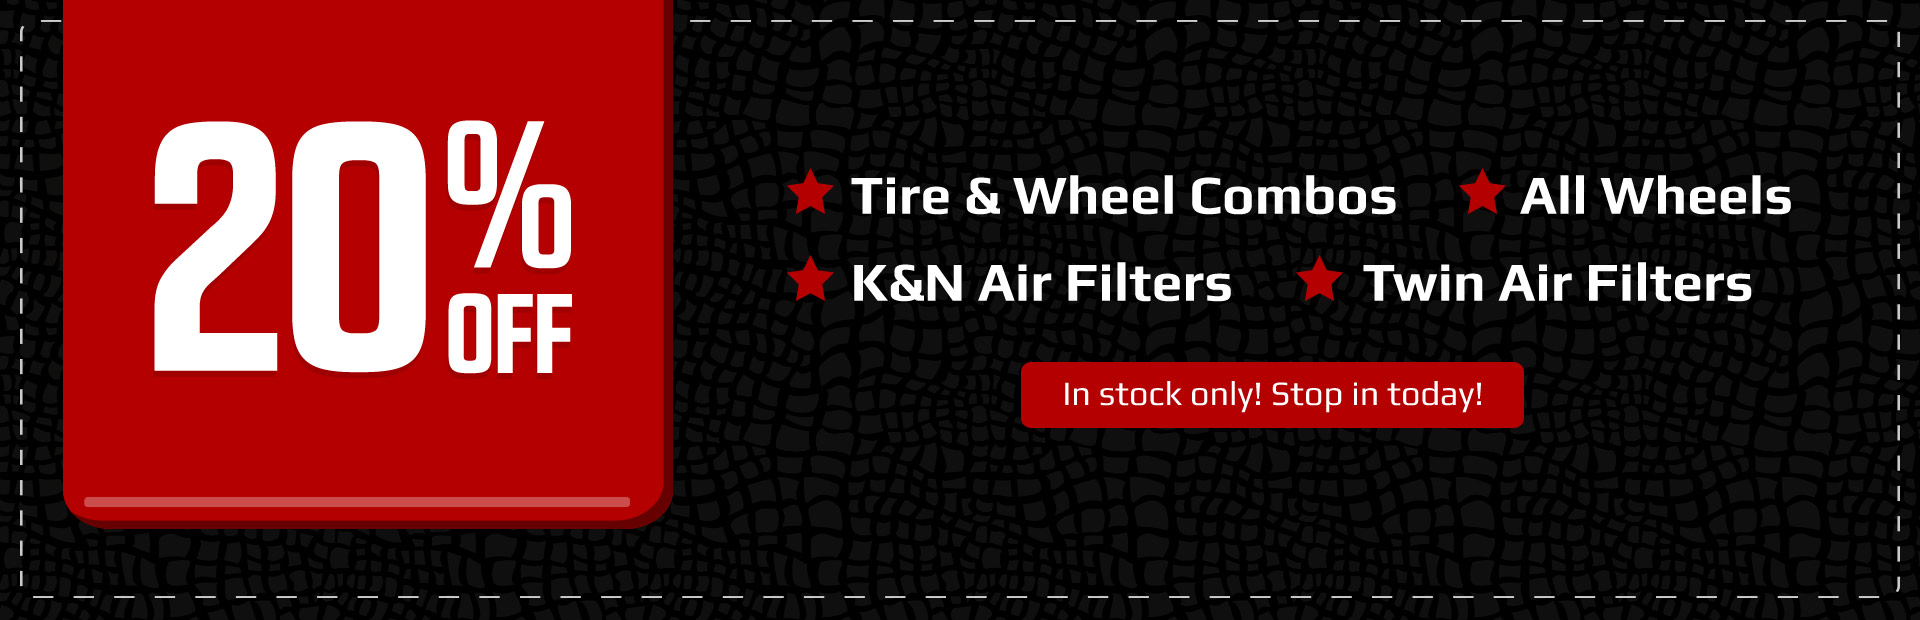 Get 20% off in-stock tire and wheel combos, all wheels, K&N air filters, and Twin air filters!